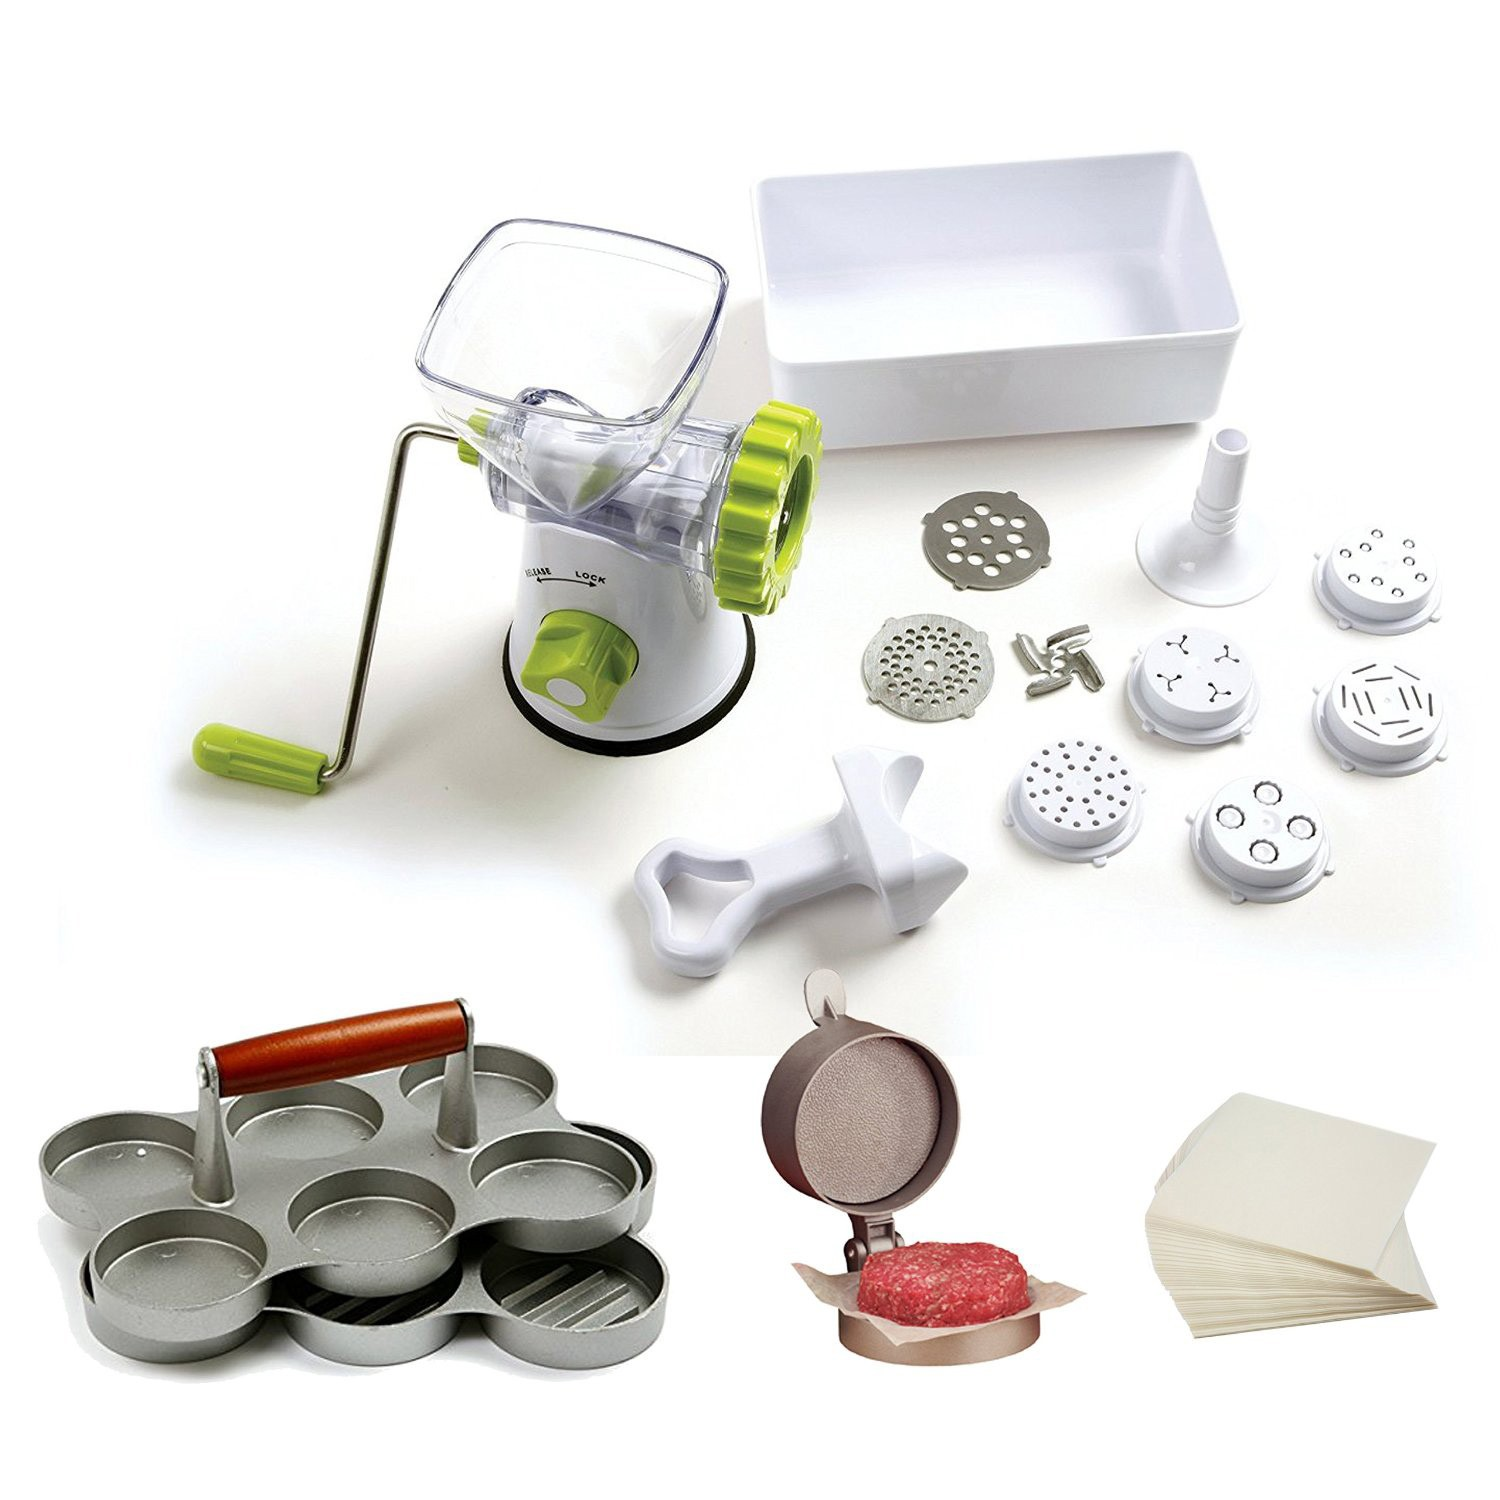 TigerChef White Complete Pasta / Burger Maker Supplies Set